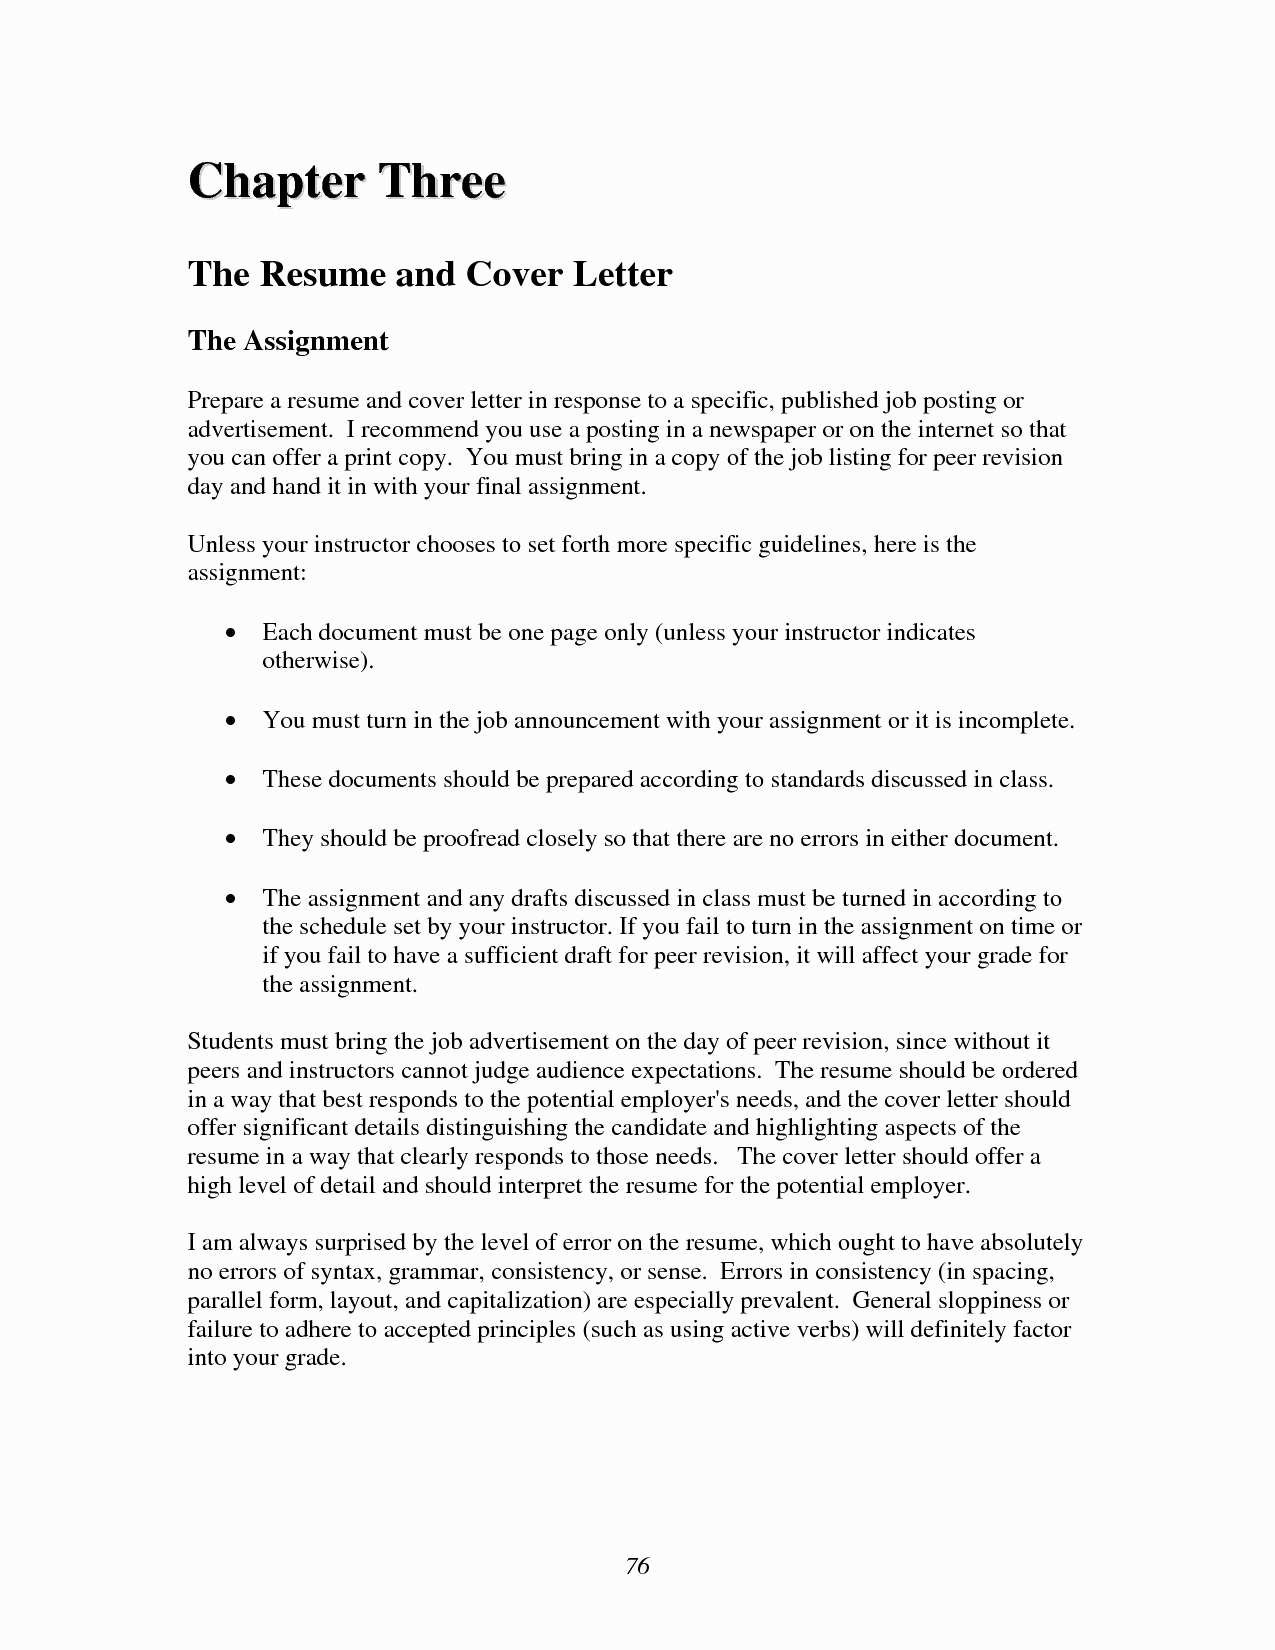 Career Change Cover Letter Template - Sample Cover Letter for Career Change with No Experience Valid Job